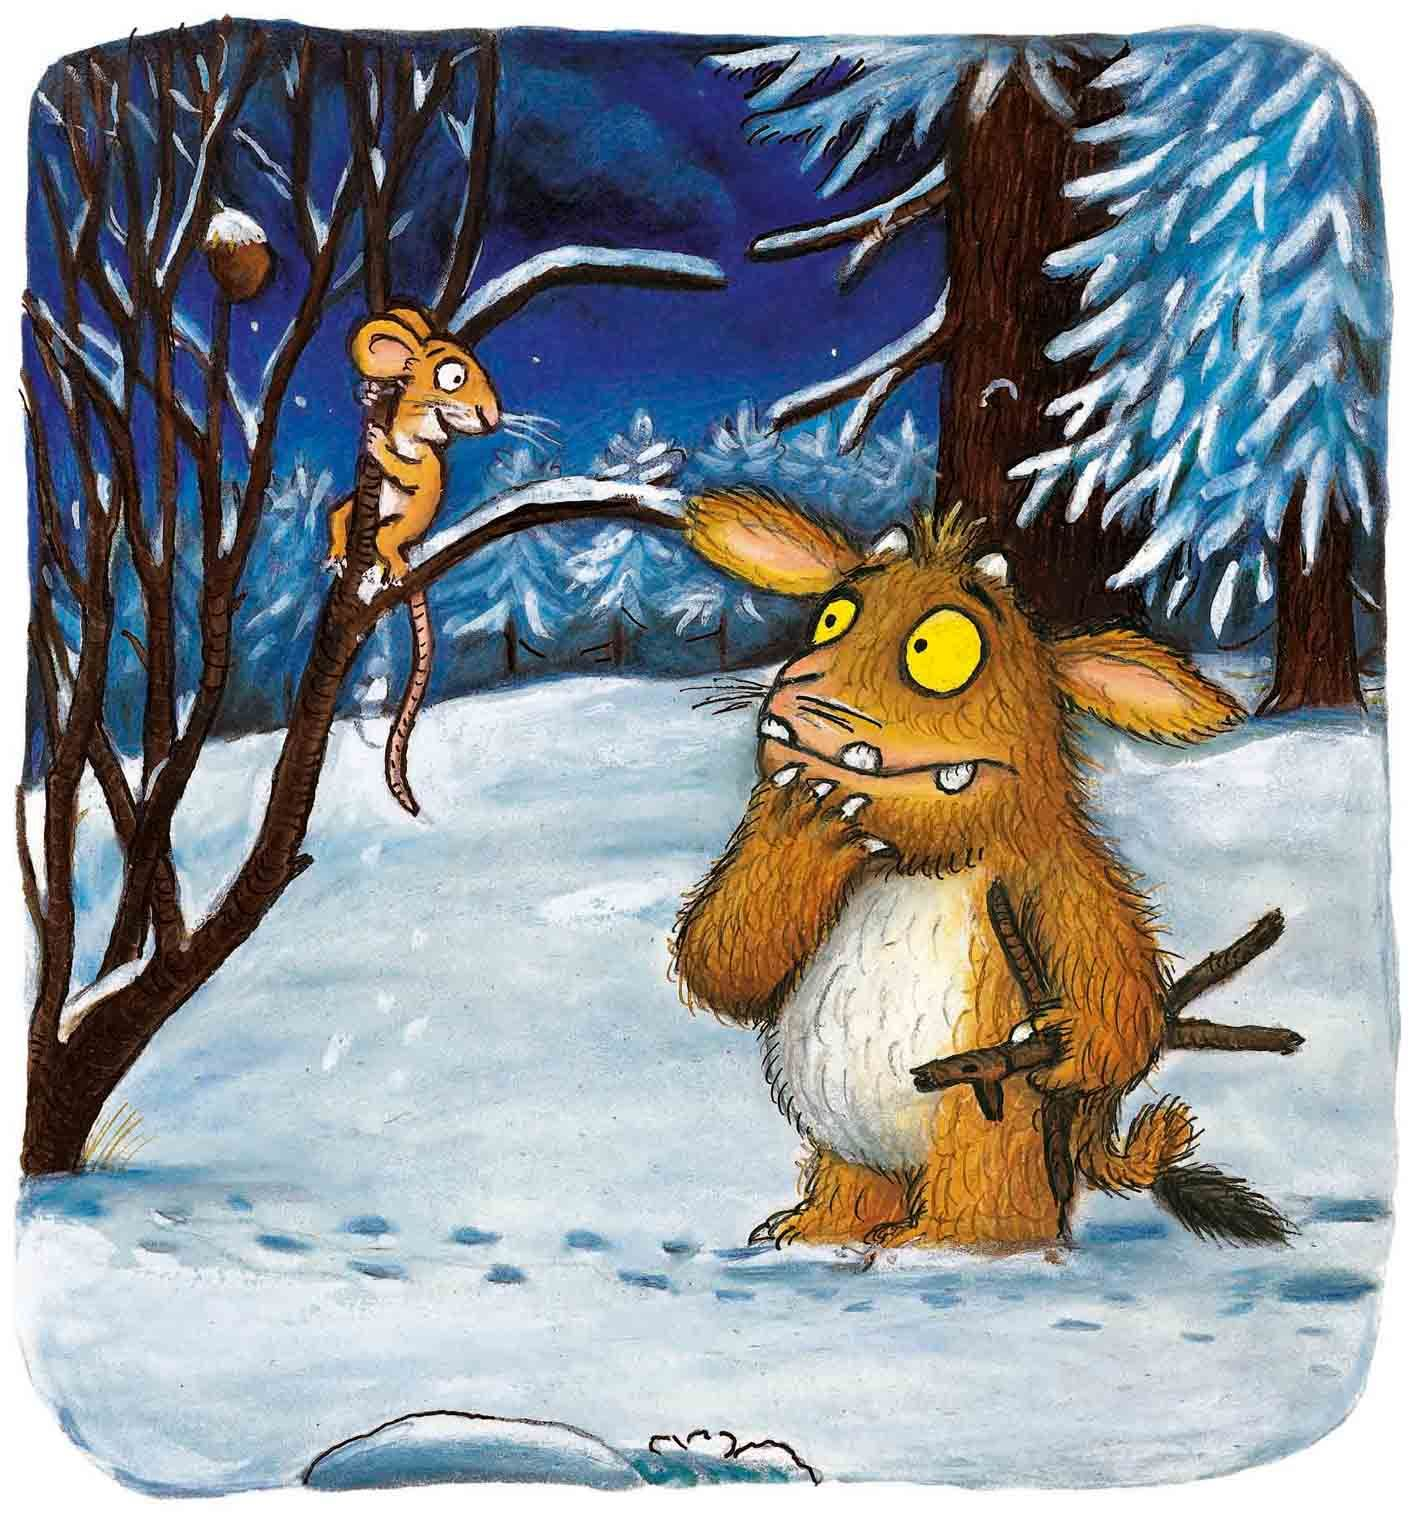 Gruffalo S Child Listens To Mouse With Images